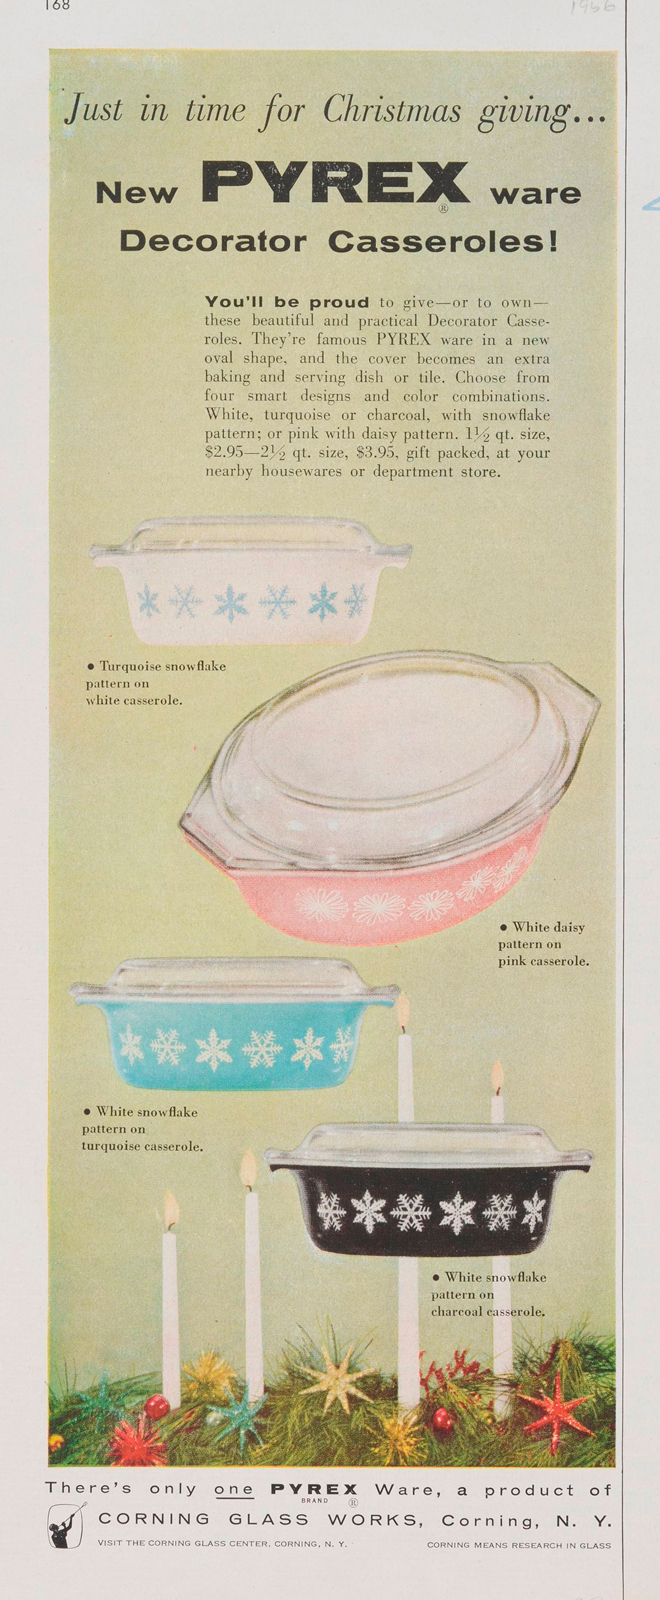 """""""Just in time for Christmas giving....new Pyrex ware decorator casseroles!"""" Advertisement from Corning Glass Works, published in unknown periodical, sometime in 1956. CMGL 141137."""